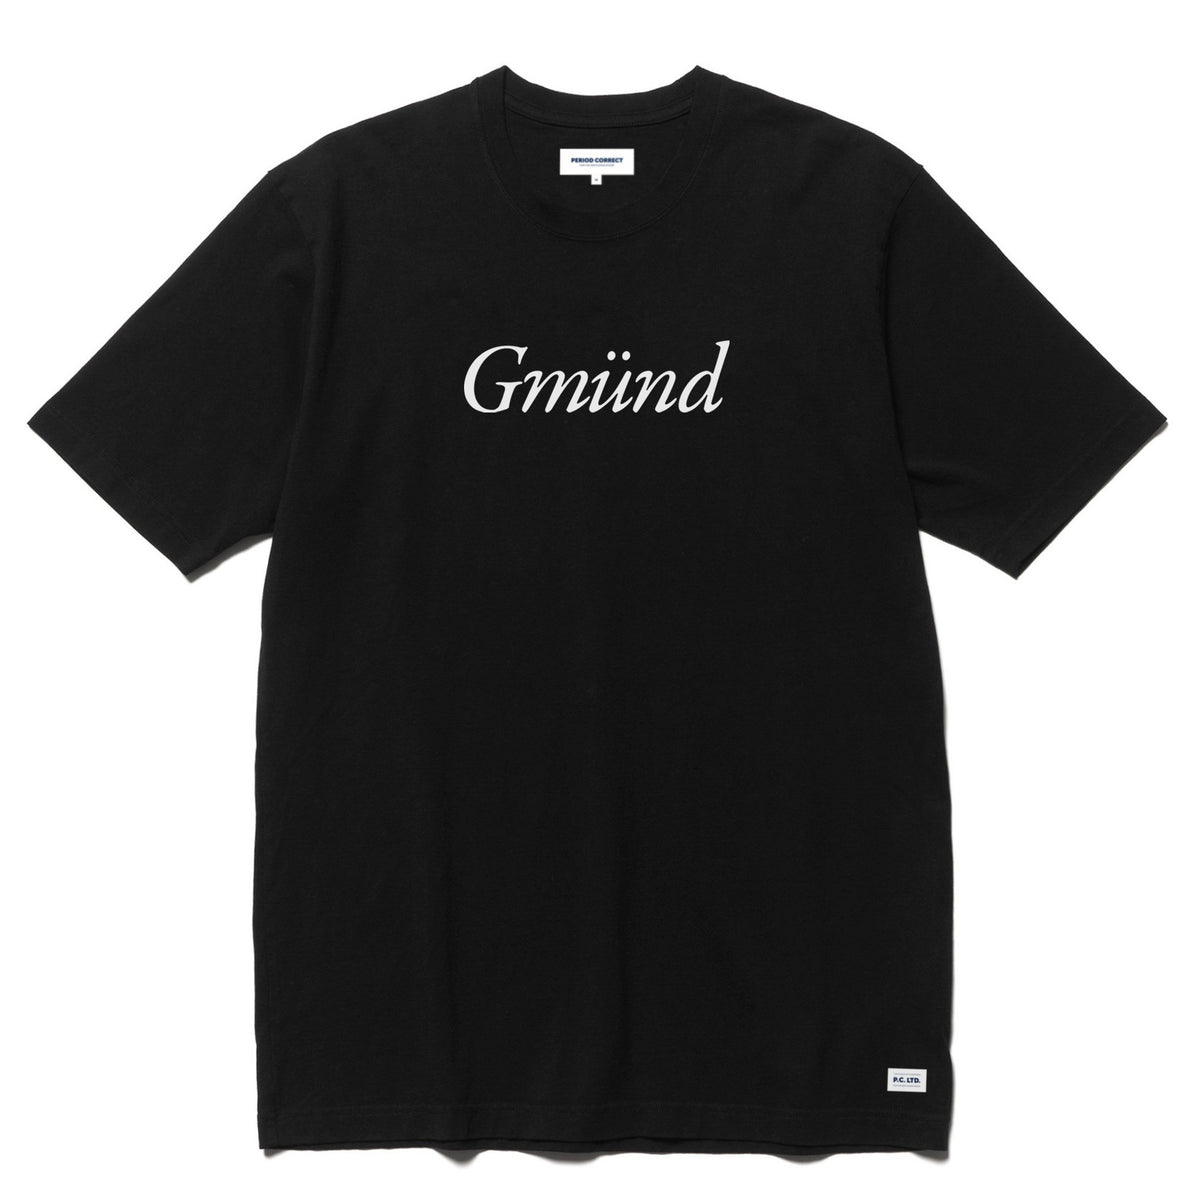 PC GMUND T-SHIRT BLACK